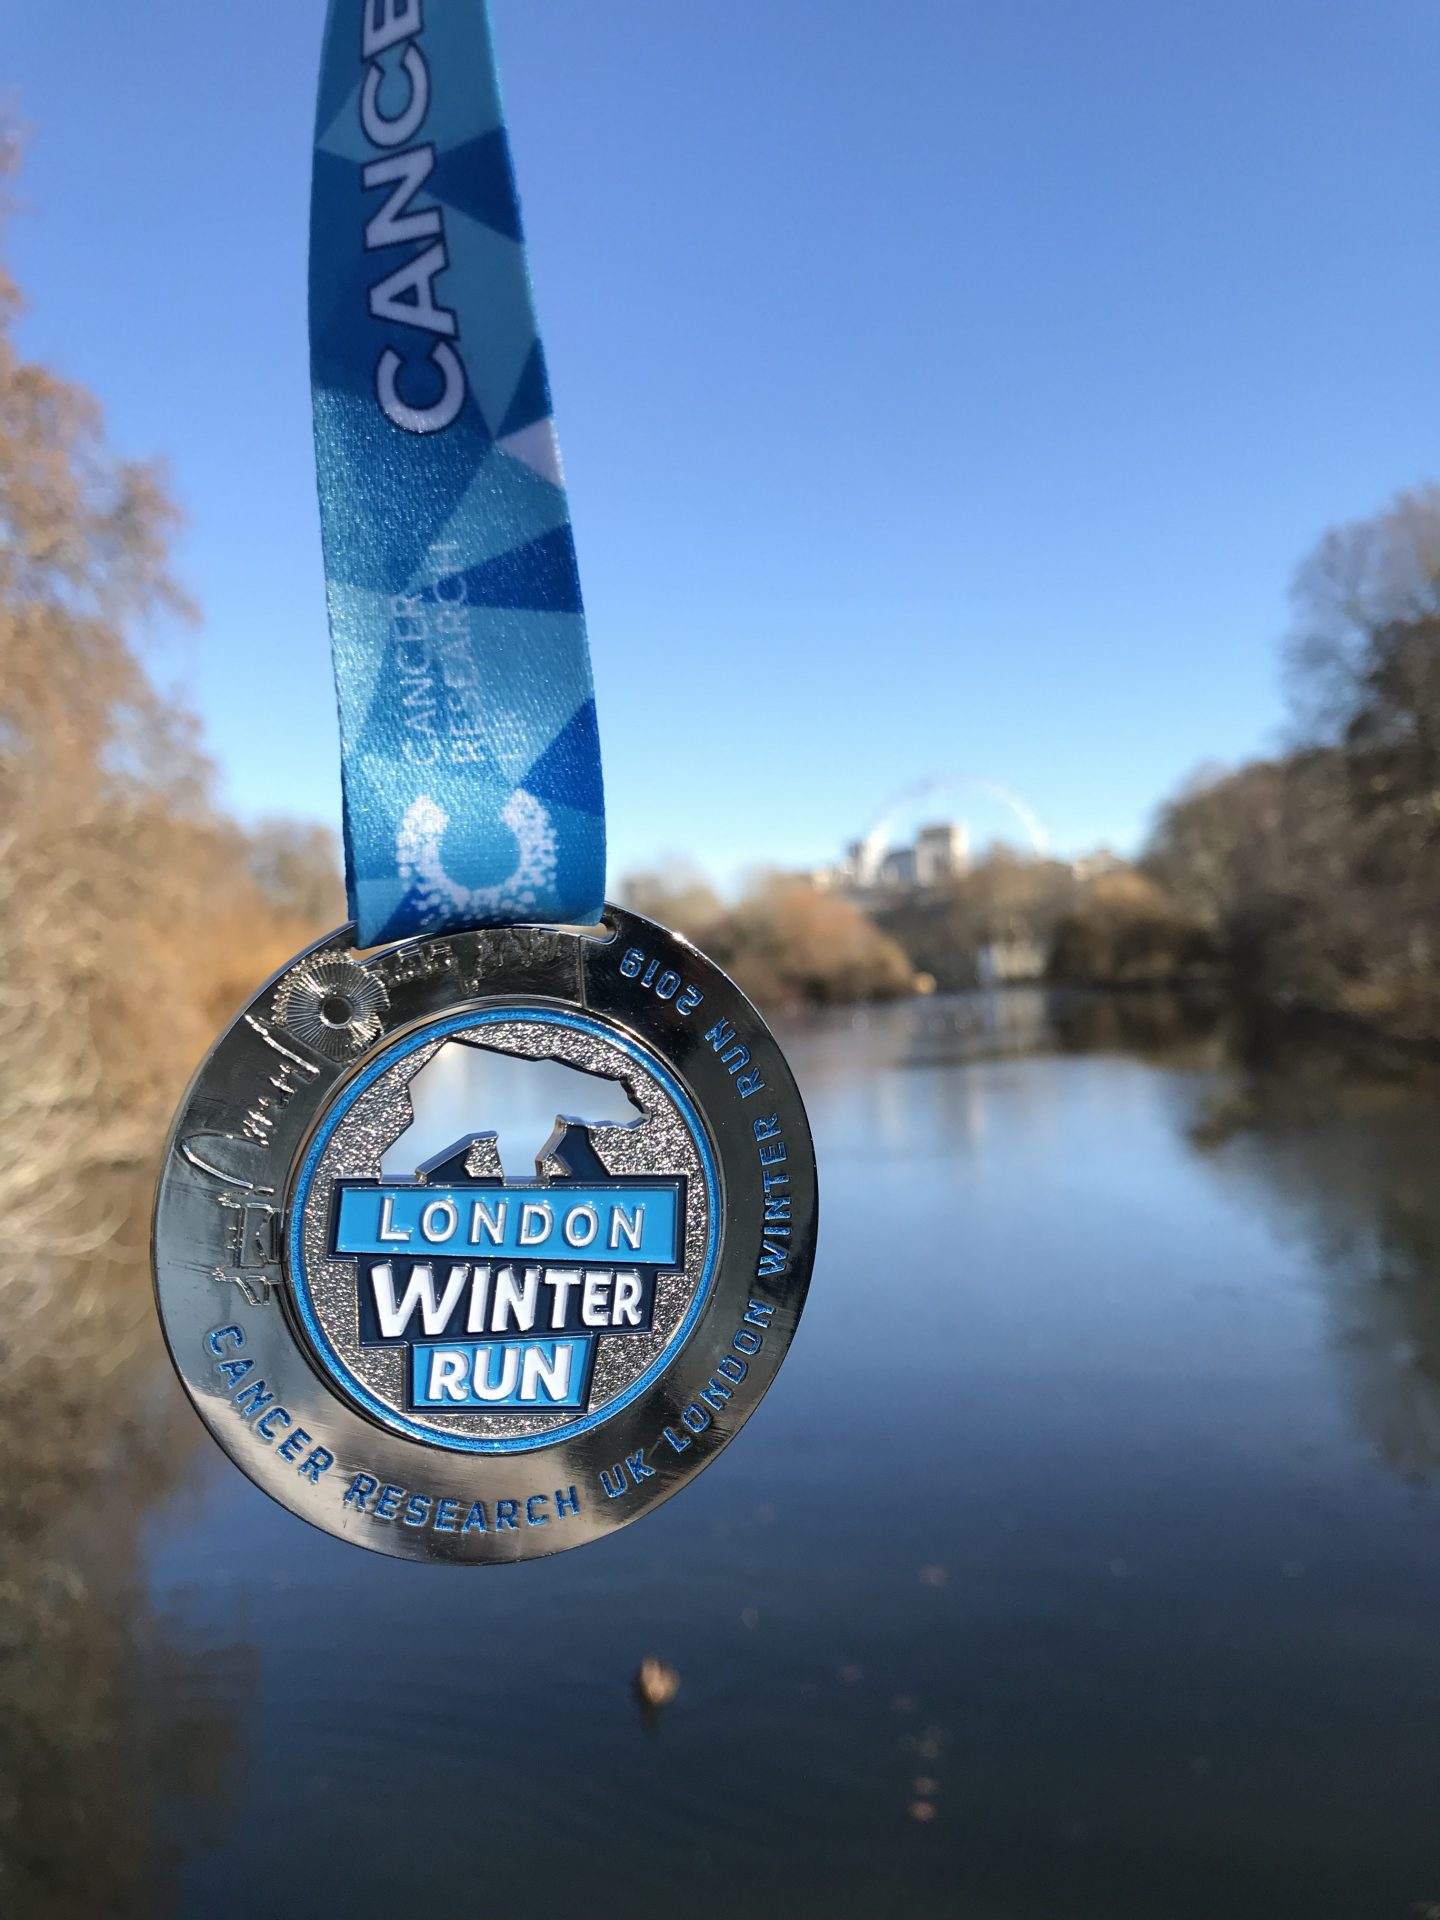 London Winter 10k Race Review